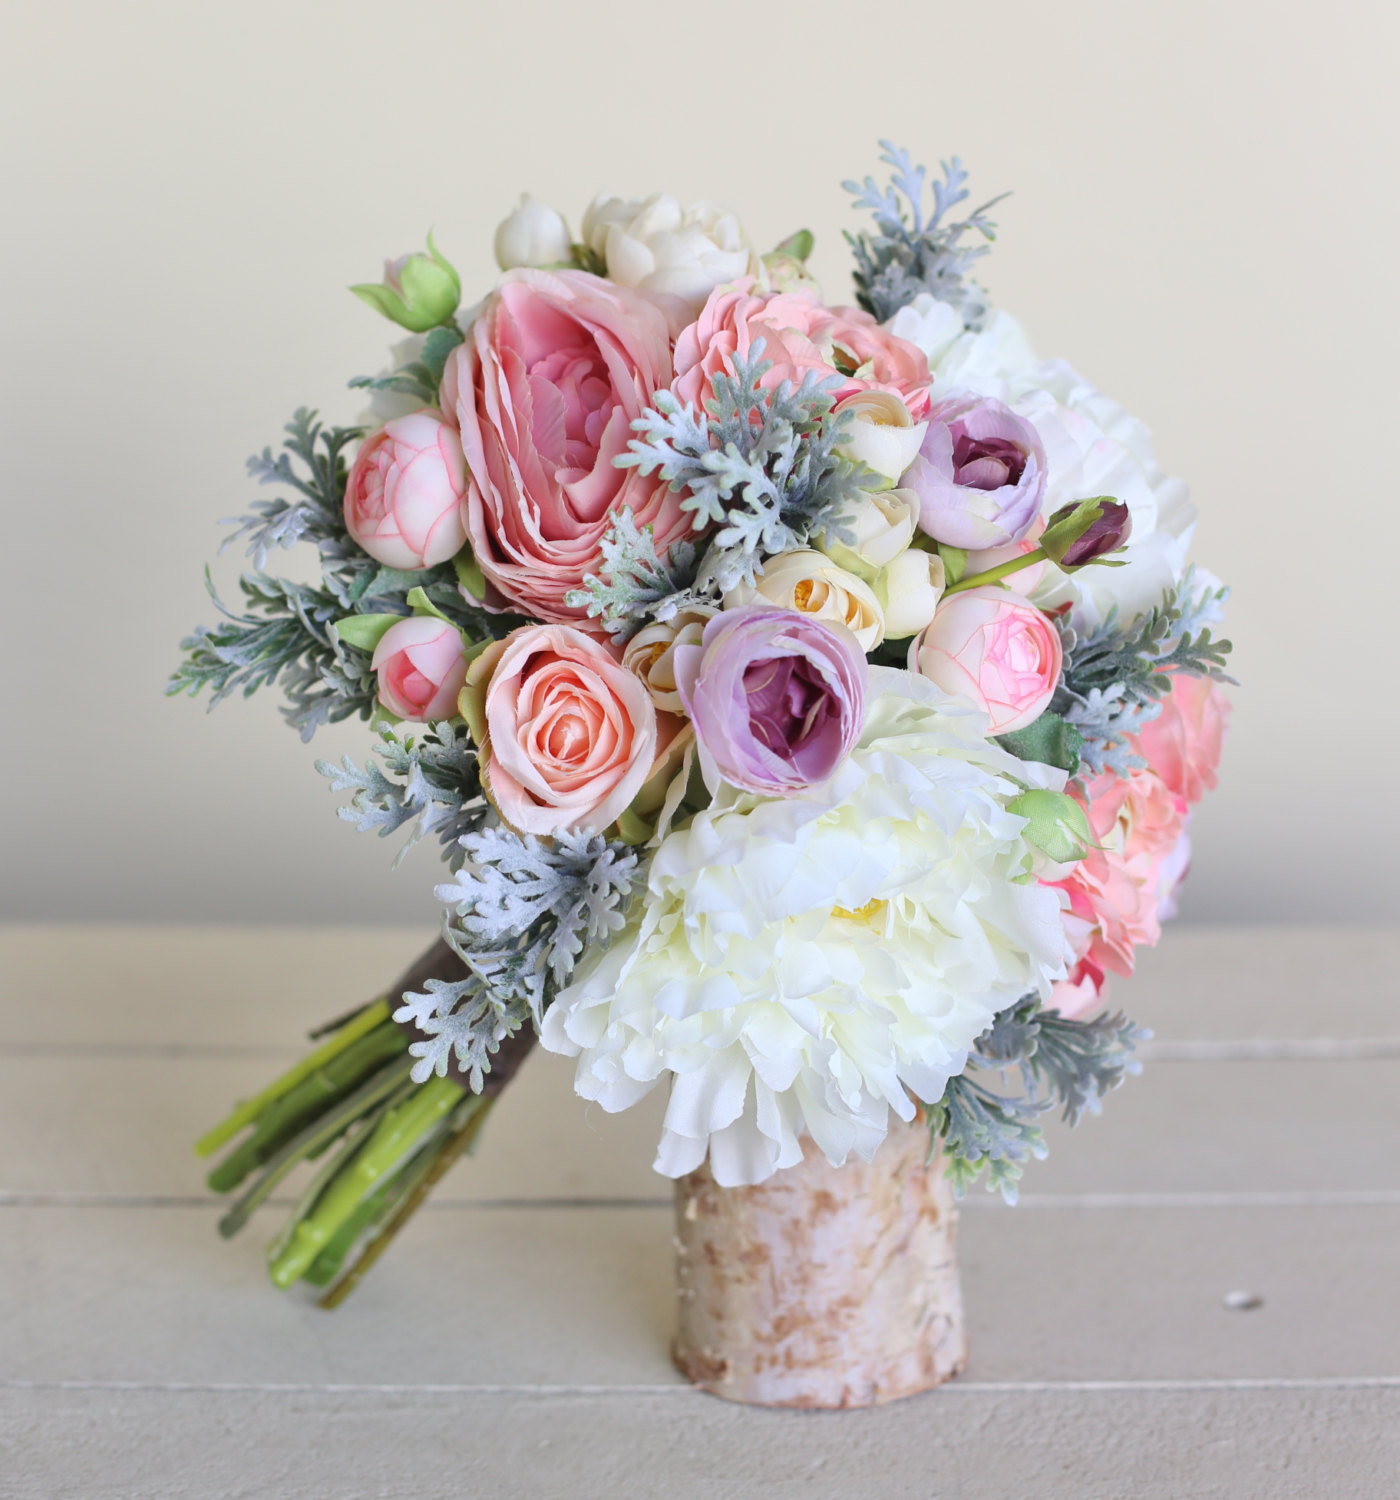 Flower Wedding Bouquet: Wedding Bridal Bouquet Inspiration